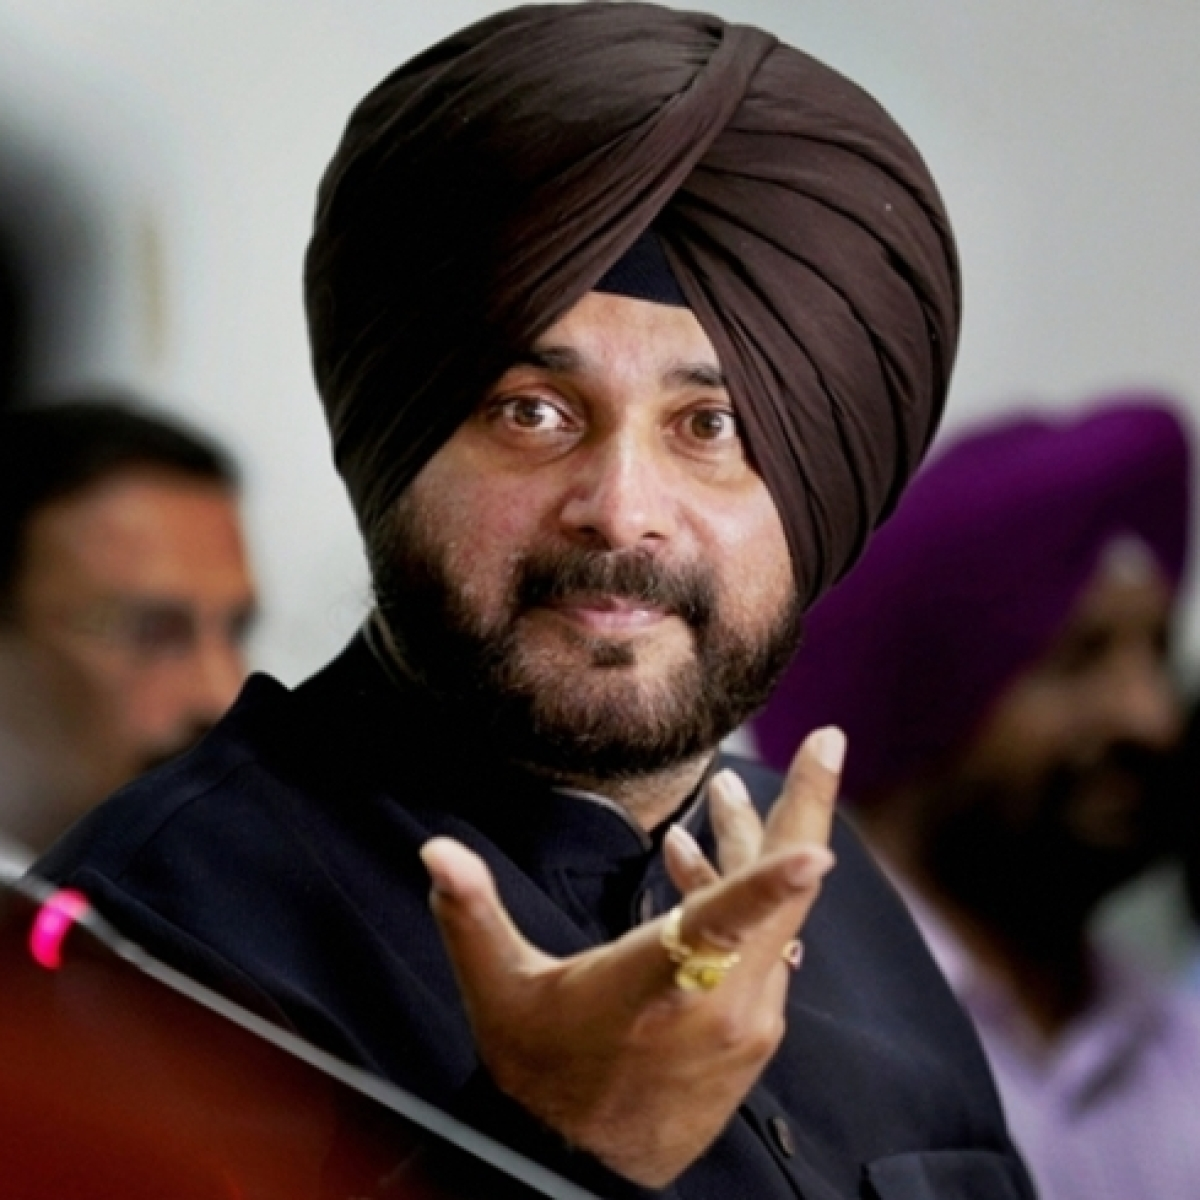 Navjot Singh Sidhu has not drawn his salary after resignation as Minister: Govt Official